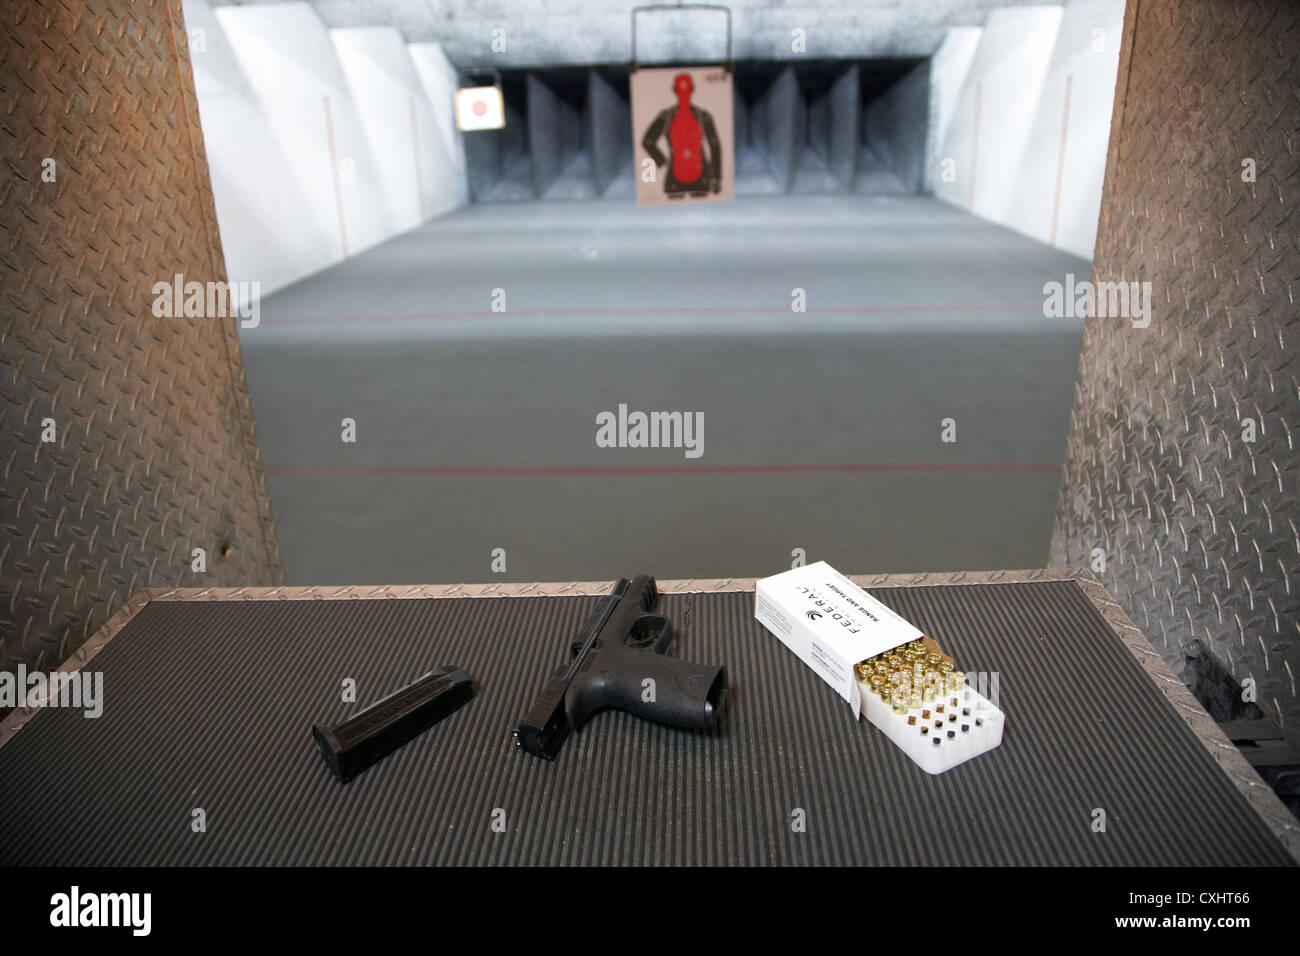 smith and wesson 9mm handgun with ammunition at a gun range in florida usa - Stock Image